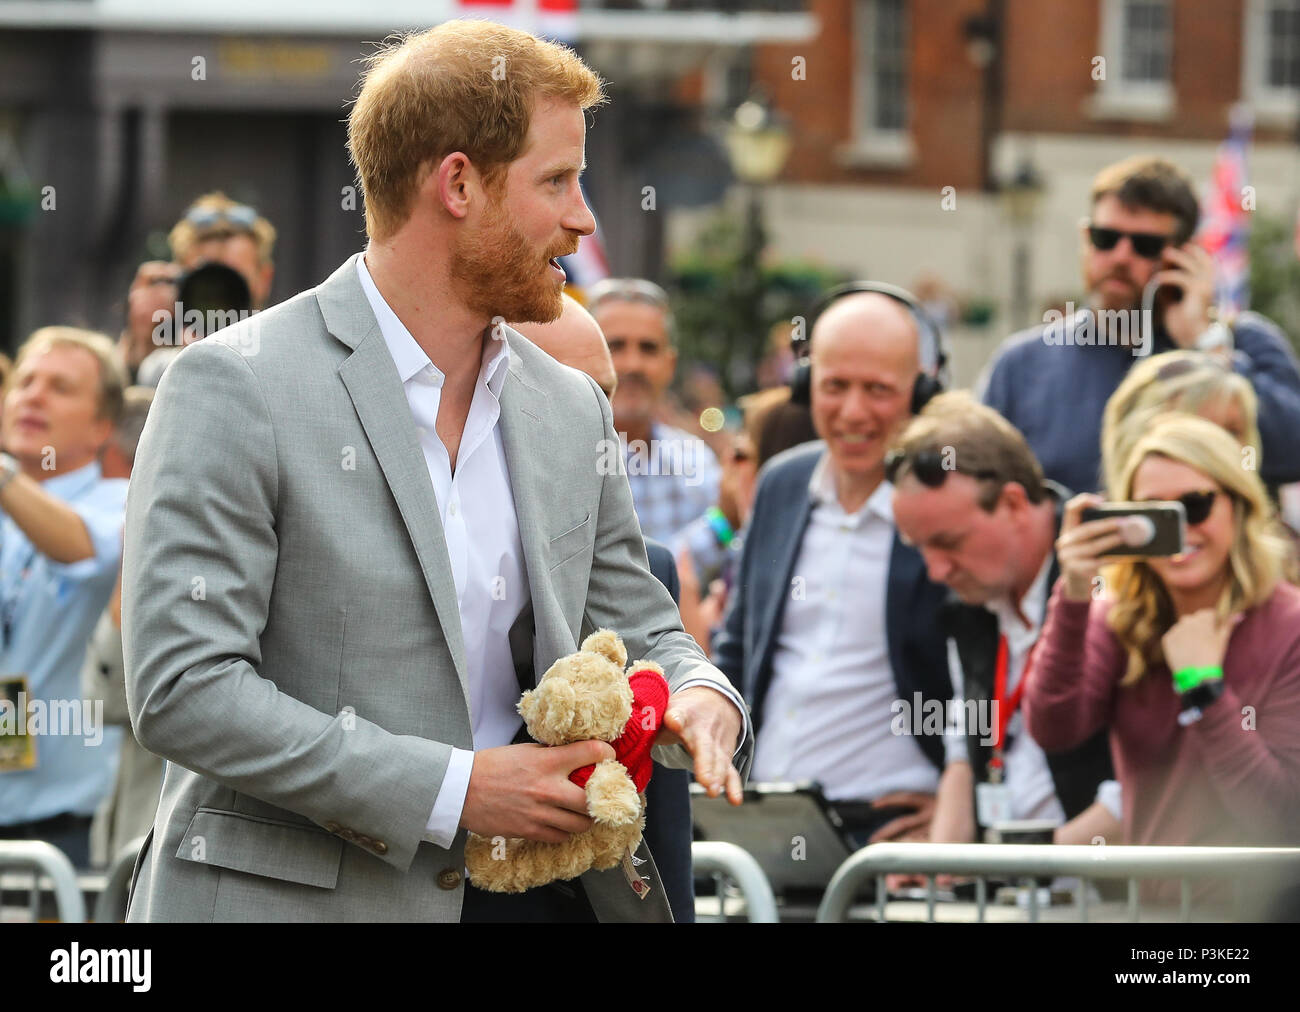 Prince Harry and Prince William greet the crowds outside Windsor Castle on the evening before Prince Harry's wedding to Meghan Markle  Featuring: Prince Harry Where: Windsor, United Kingdom When: 18 May 2018 Credit: John Rainford/WENN - Stock Image